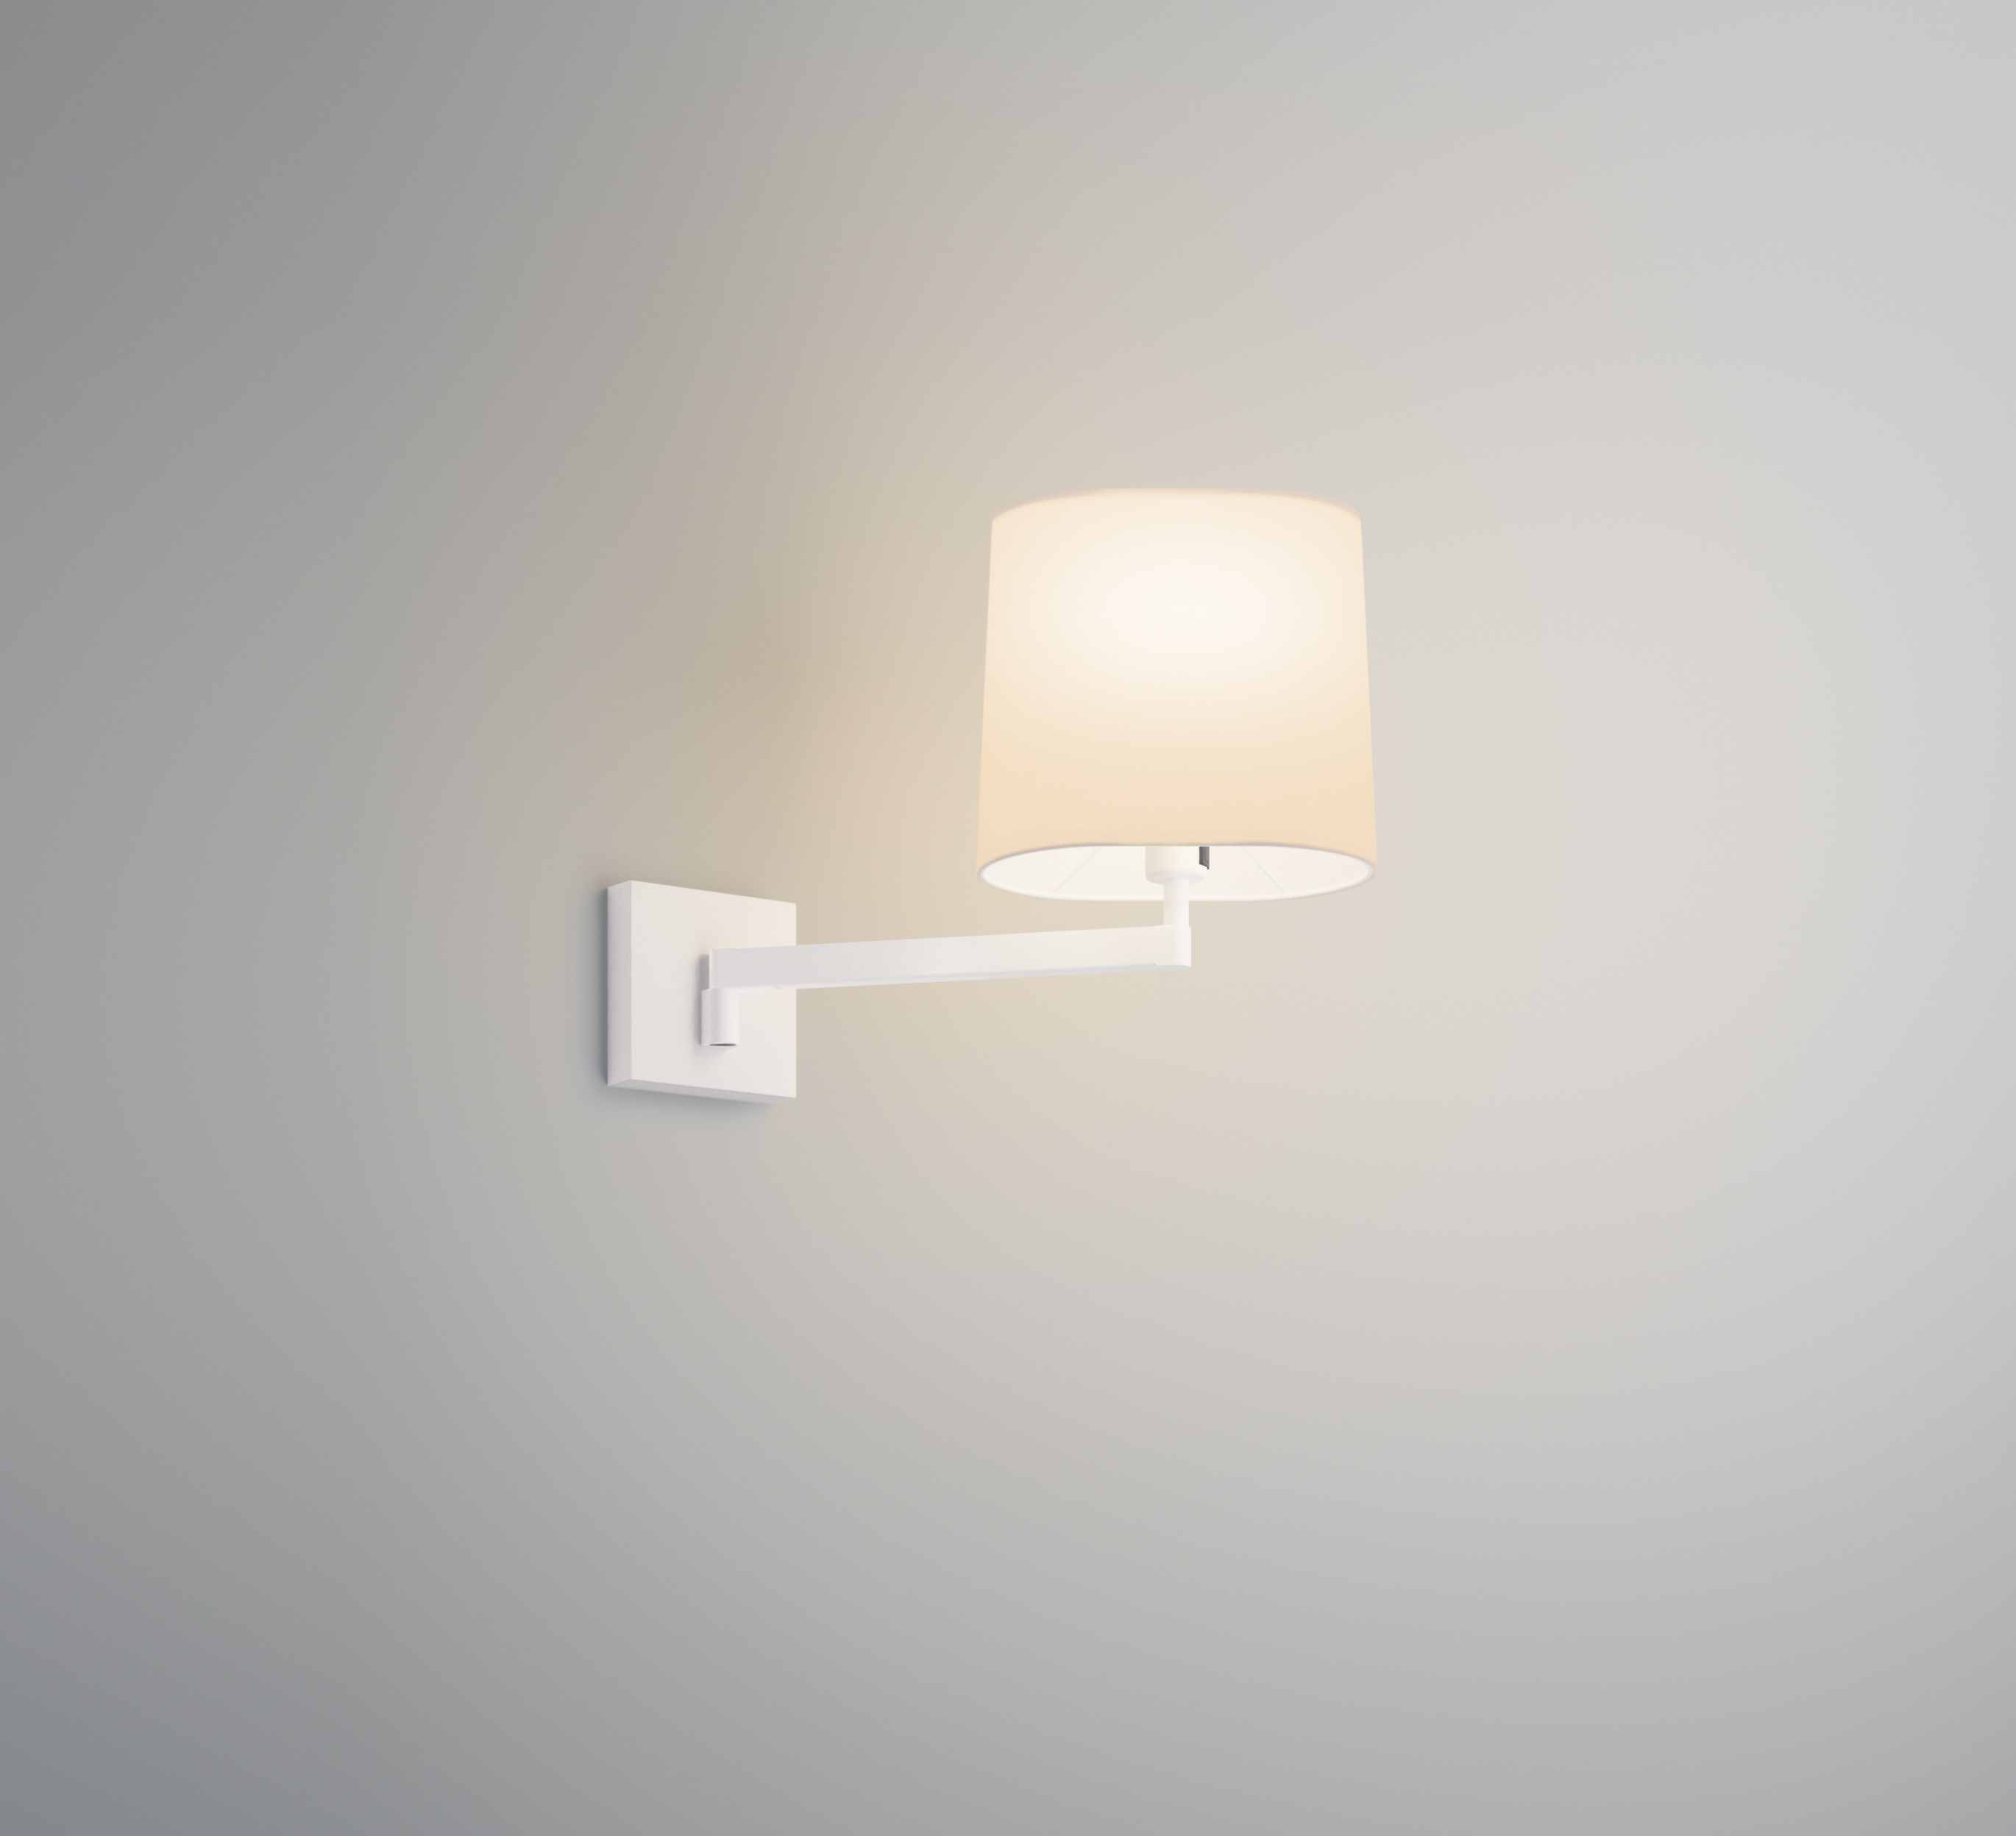 Vibia Swing Wall Lamp with lampshade Cream - Grey grafito 0509-18